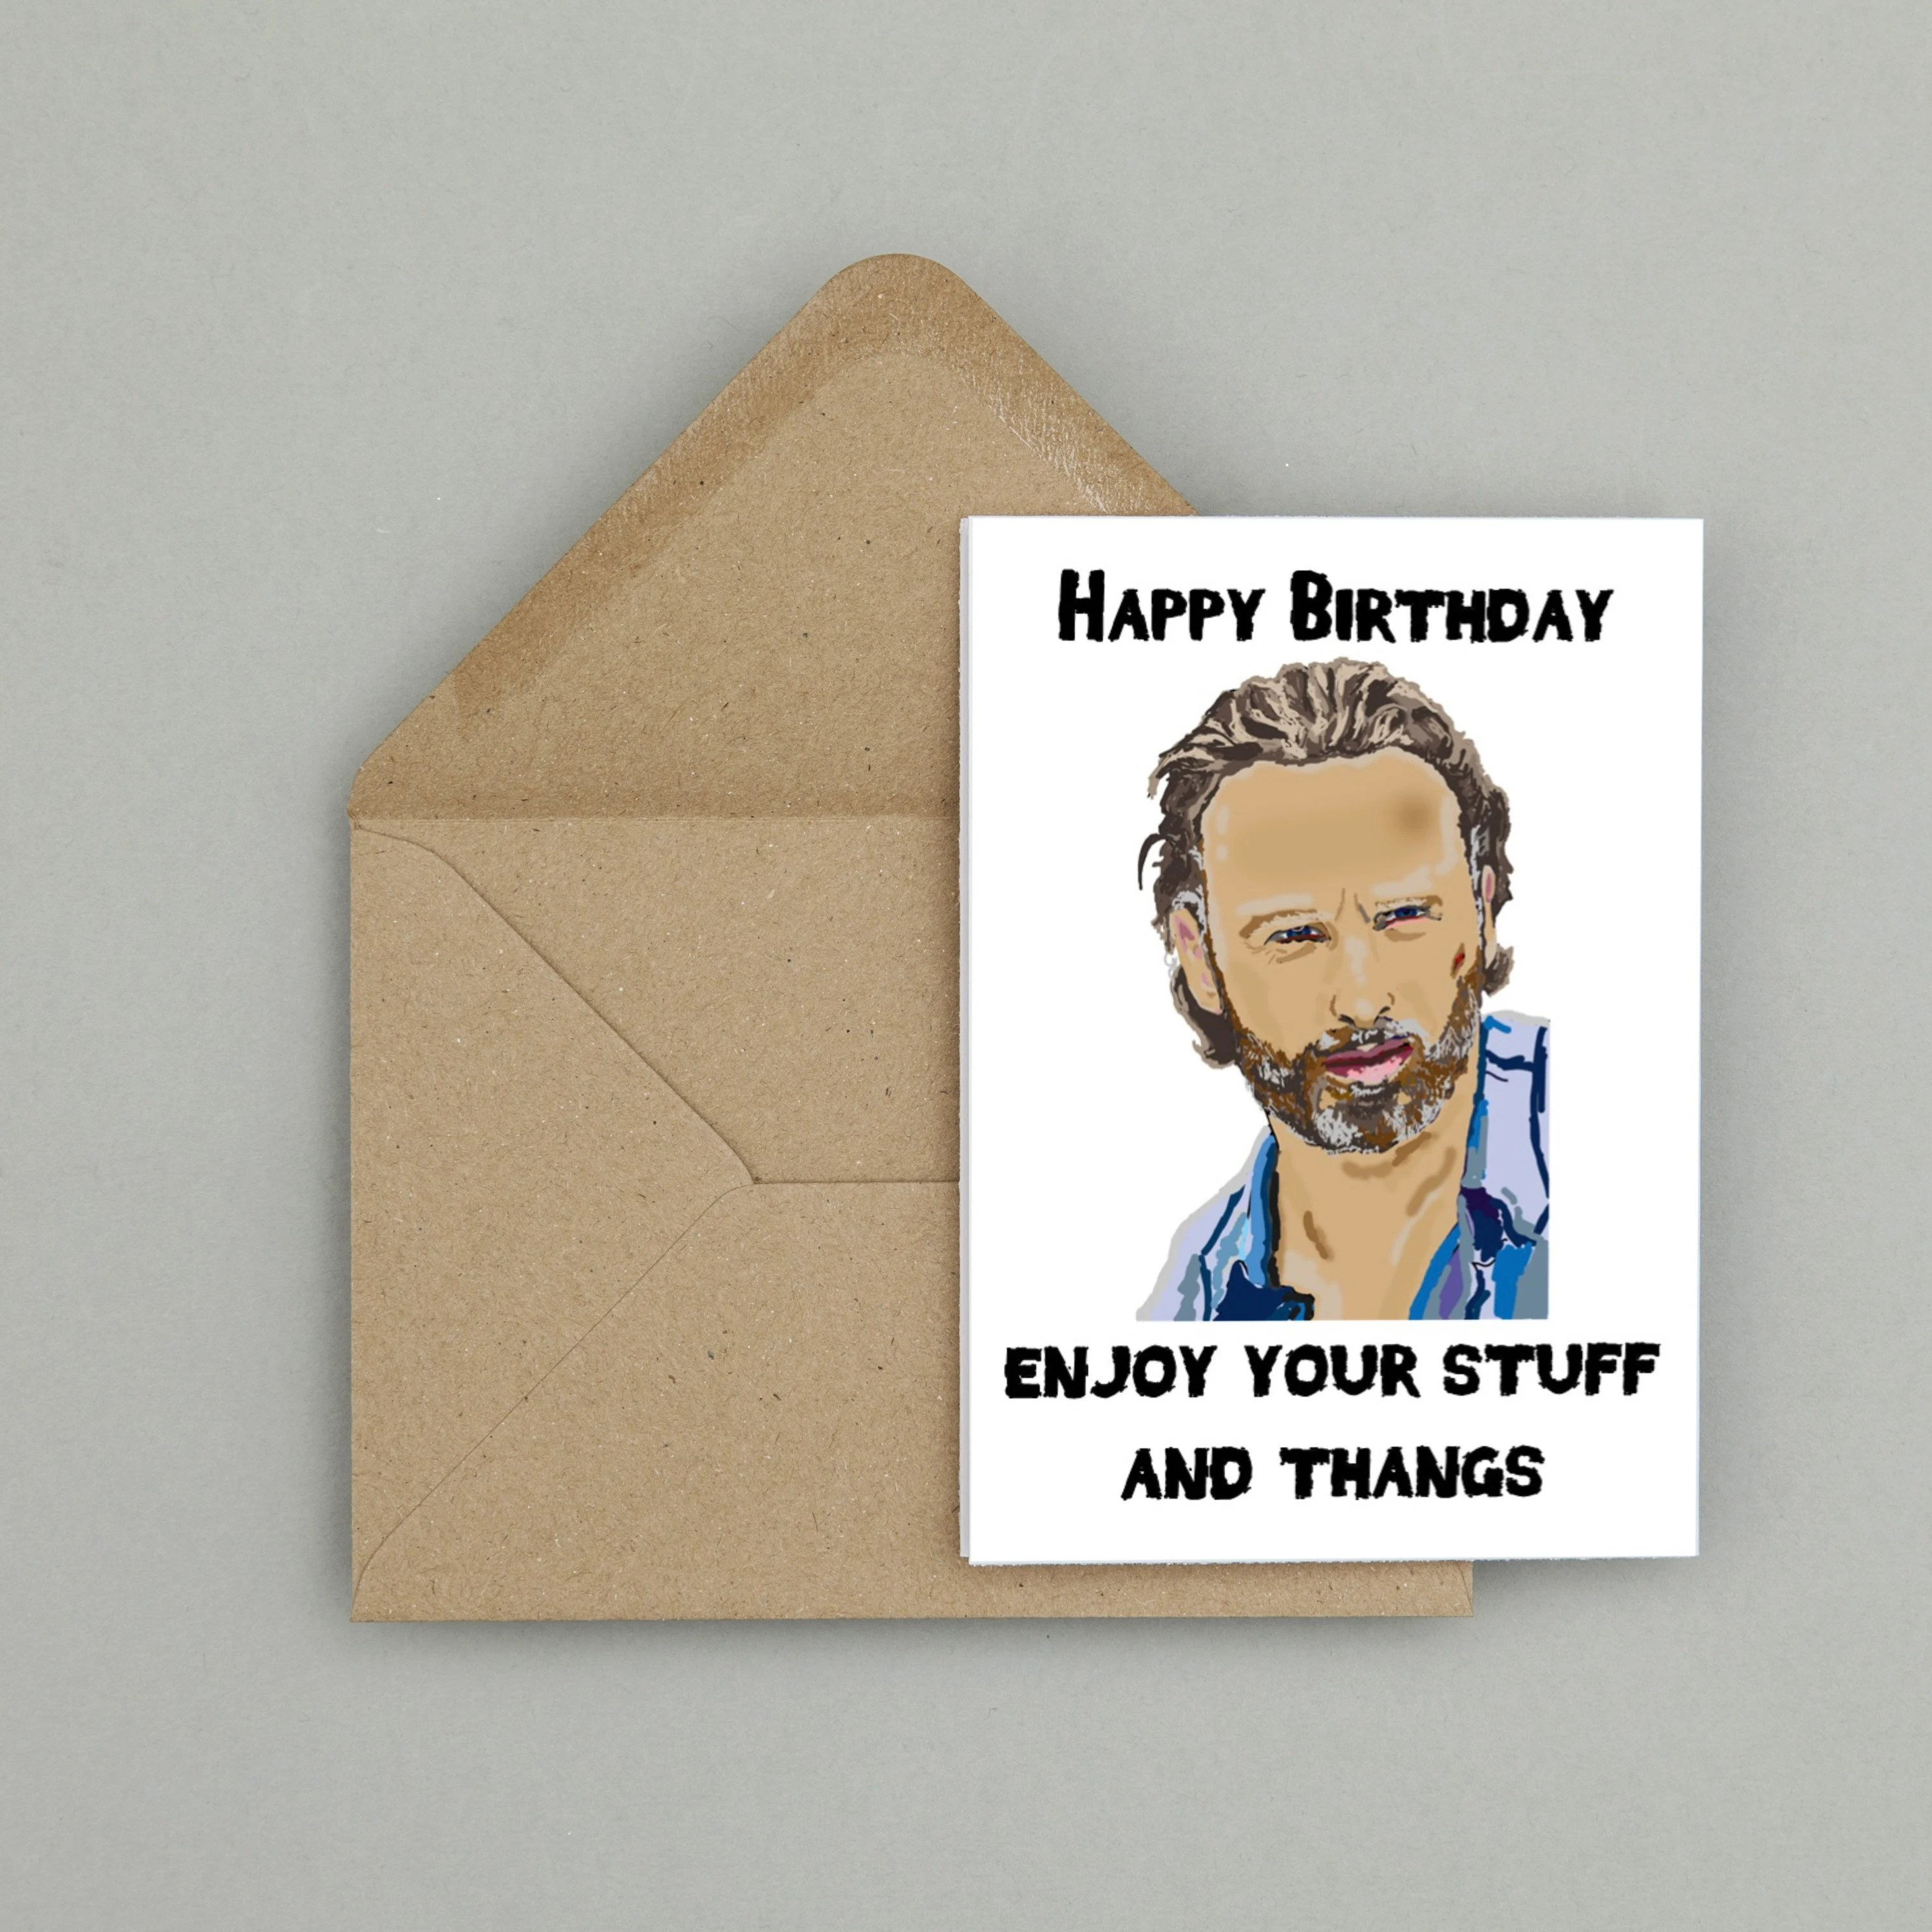 Recycled Hand Made Card The Walking Dead Rick Grimes Inspired Etsy